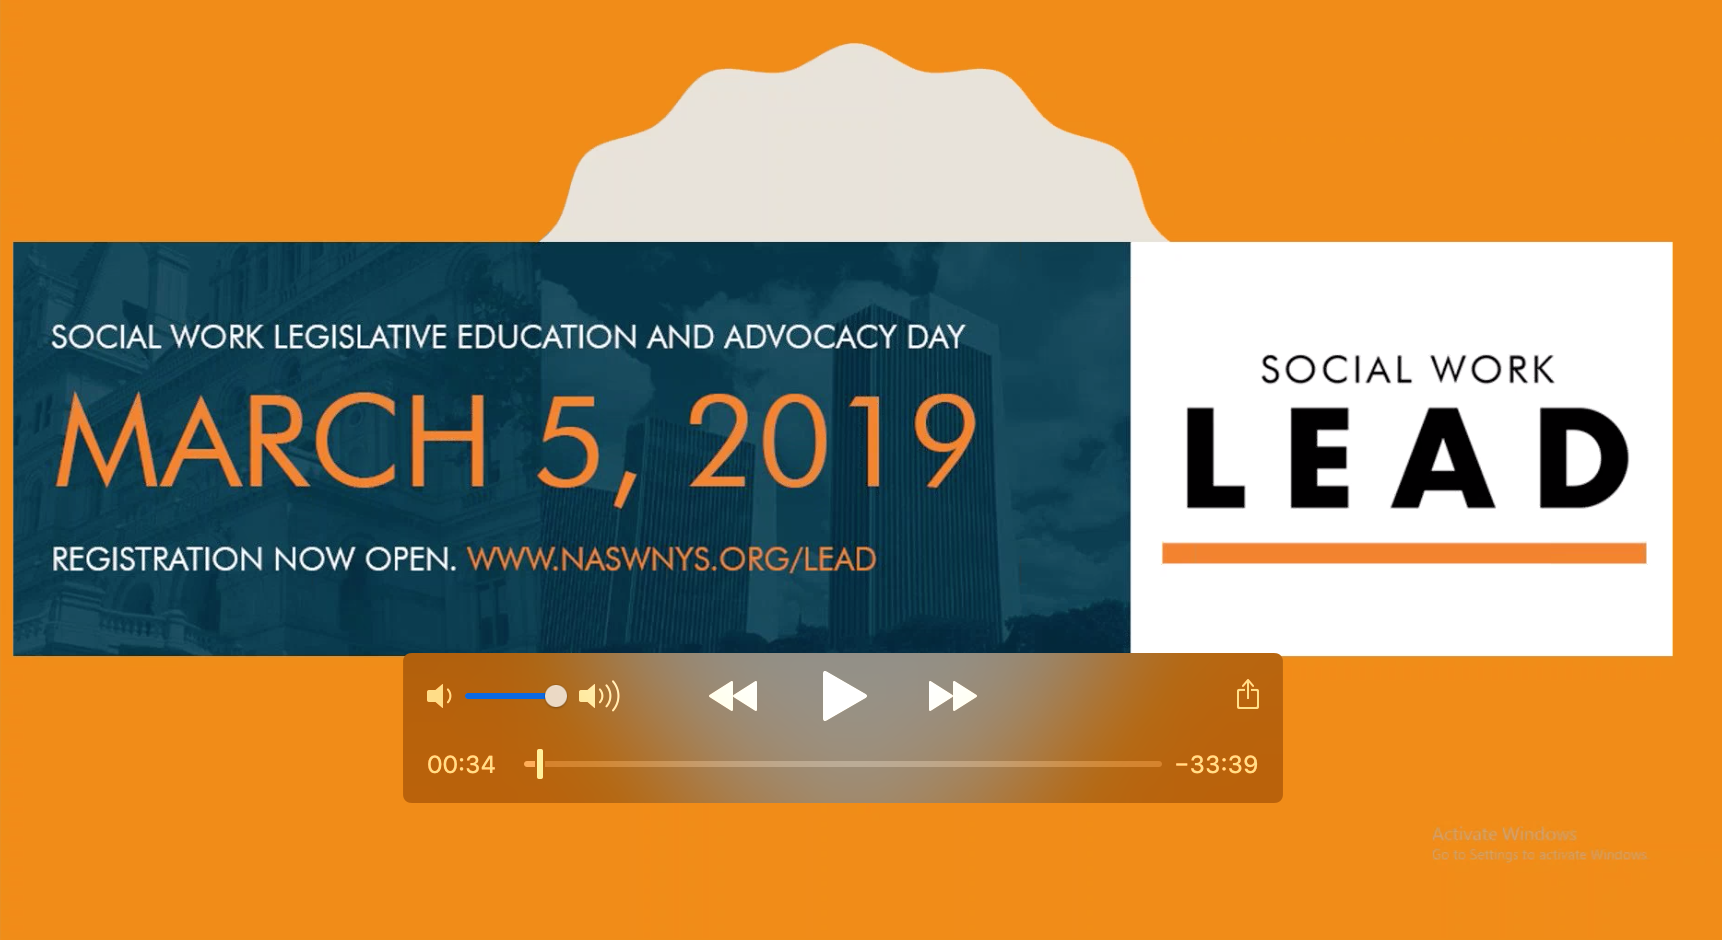 Legislative Education and Advocacy Day (LEAD) - NASW-NYS